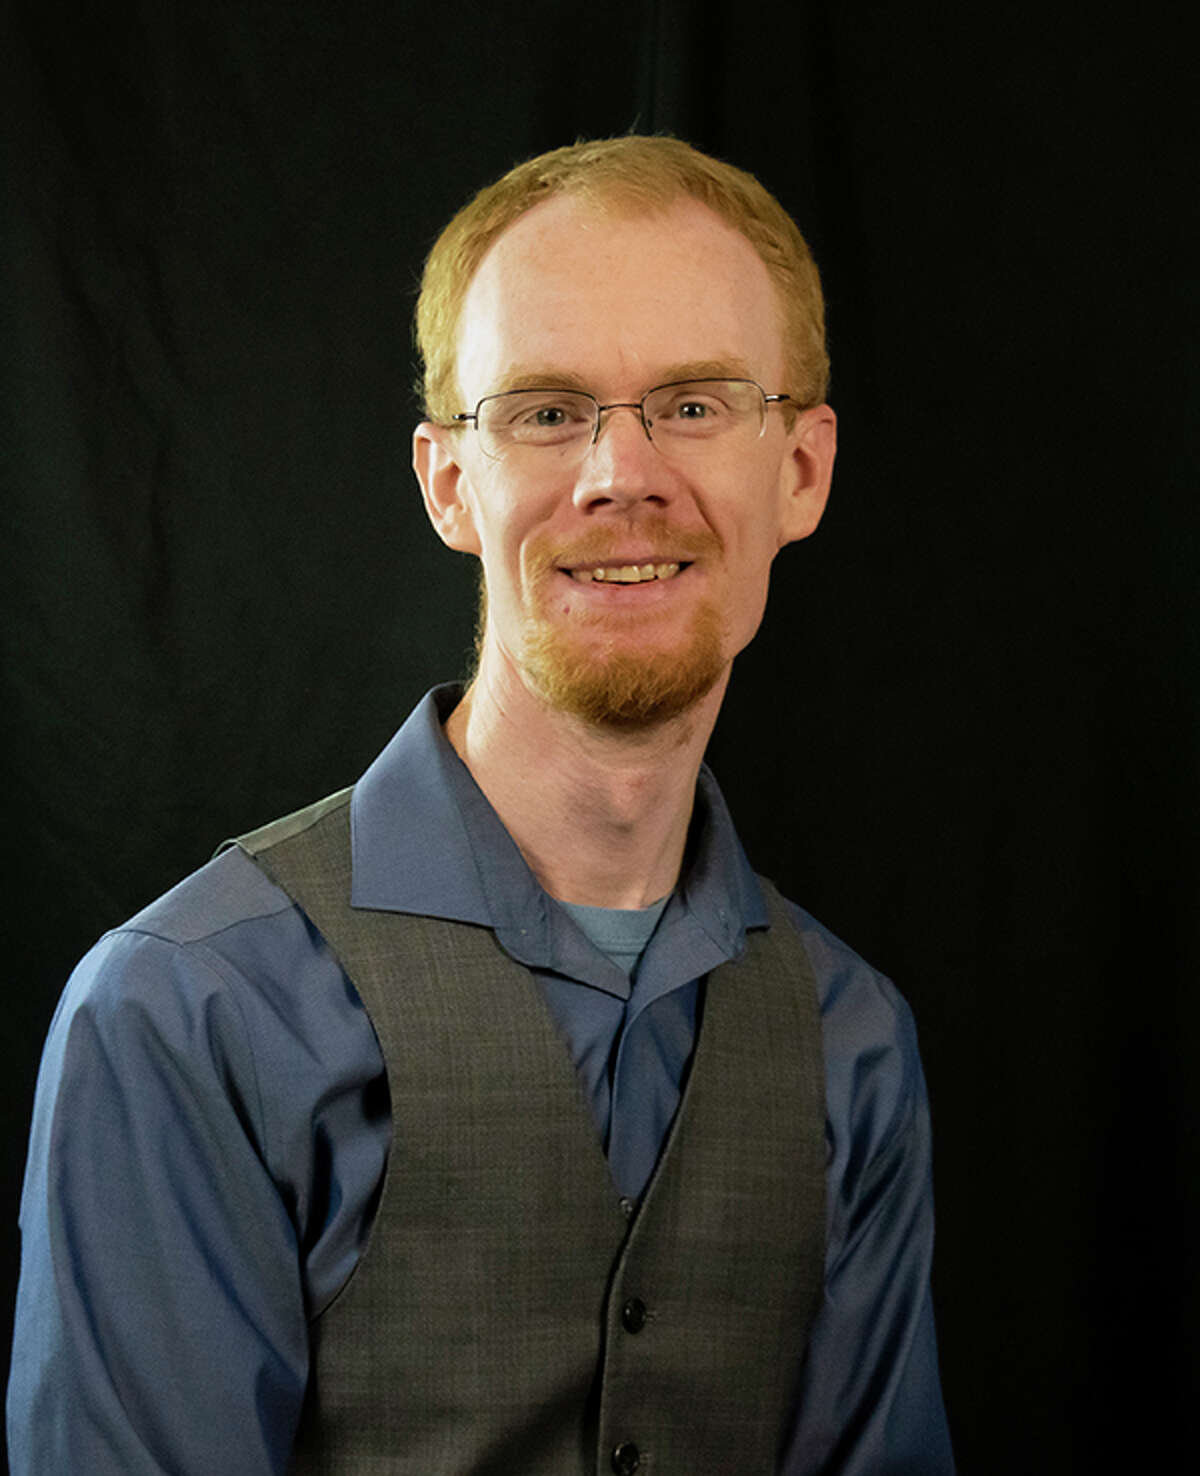 Richard Fountain, a professor of piano at Wayland Baptist University, was recently named to the 2021-2025 Fulbright Specialist Roster, an opportunity that will allow him to share his musical talents abroad.